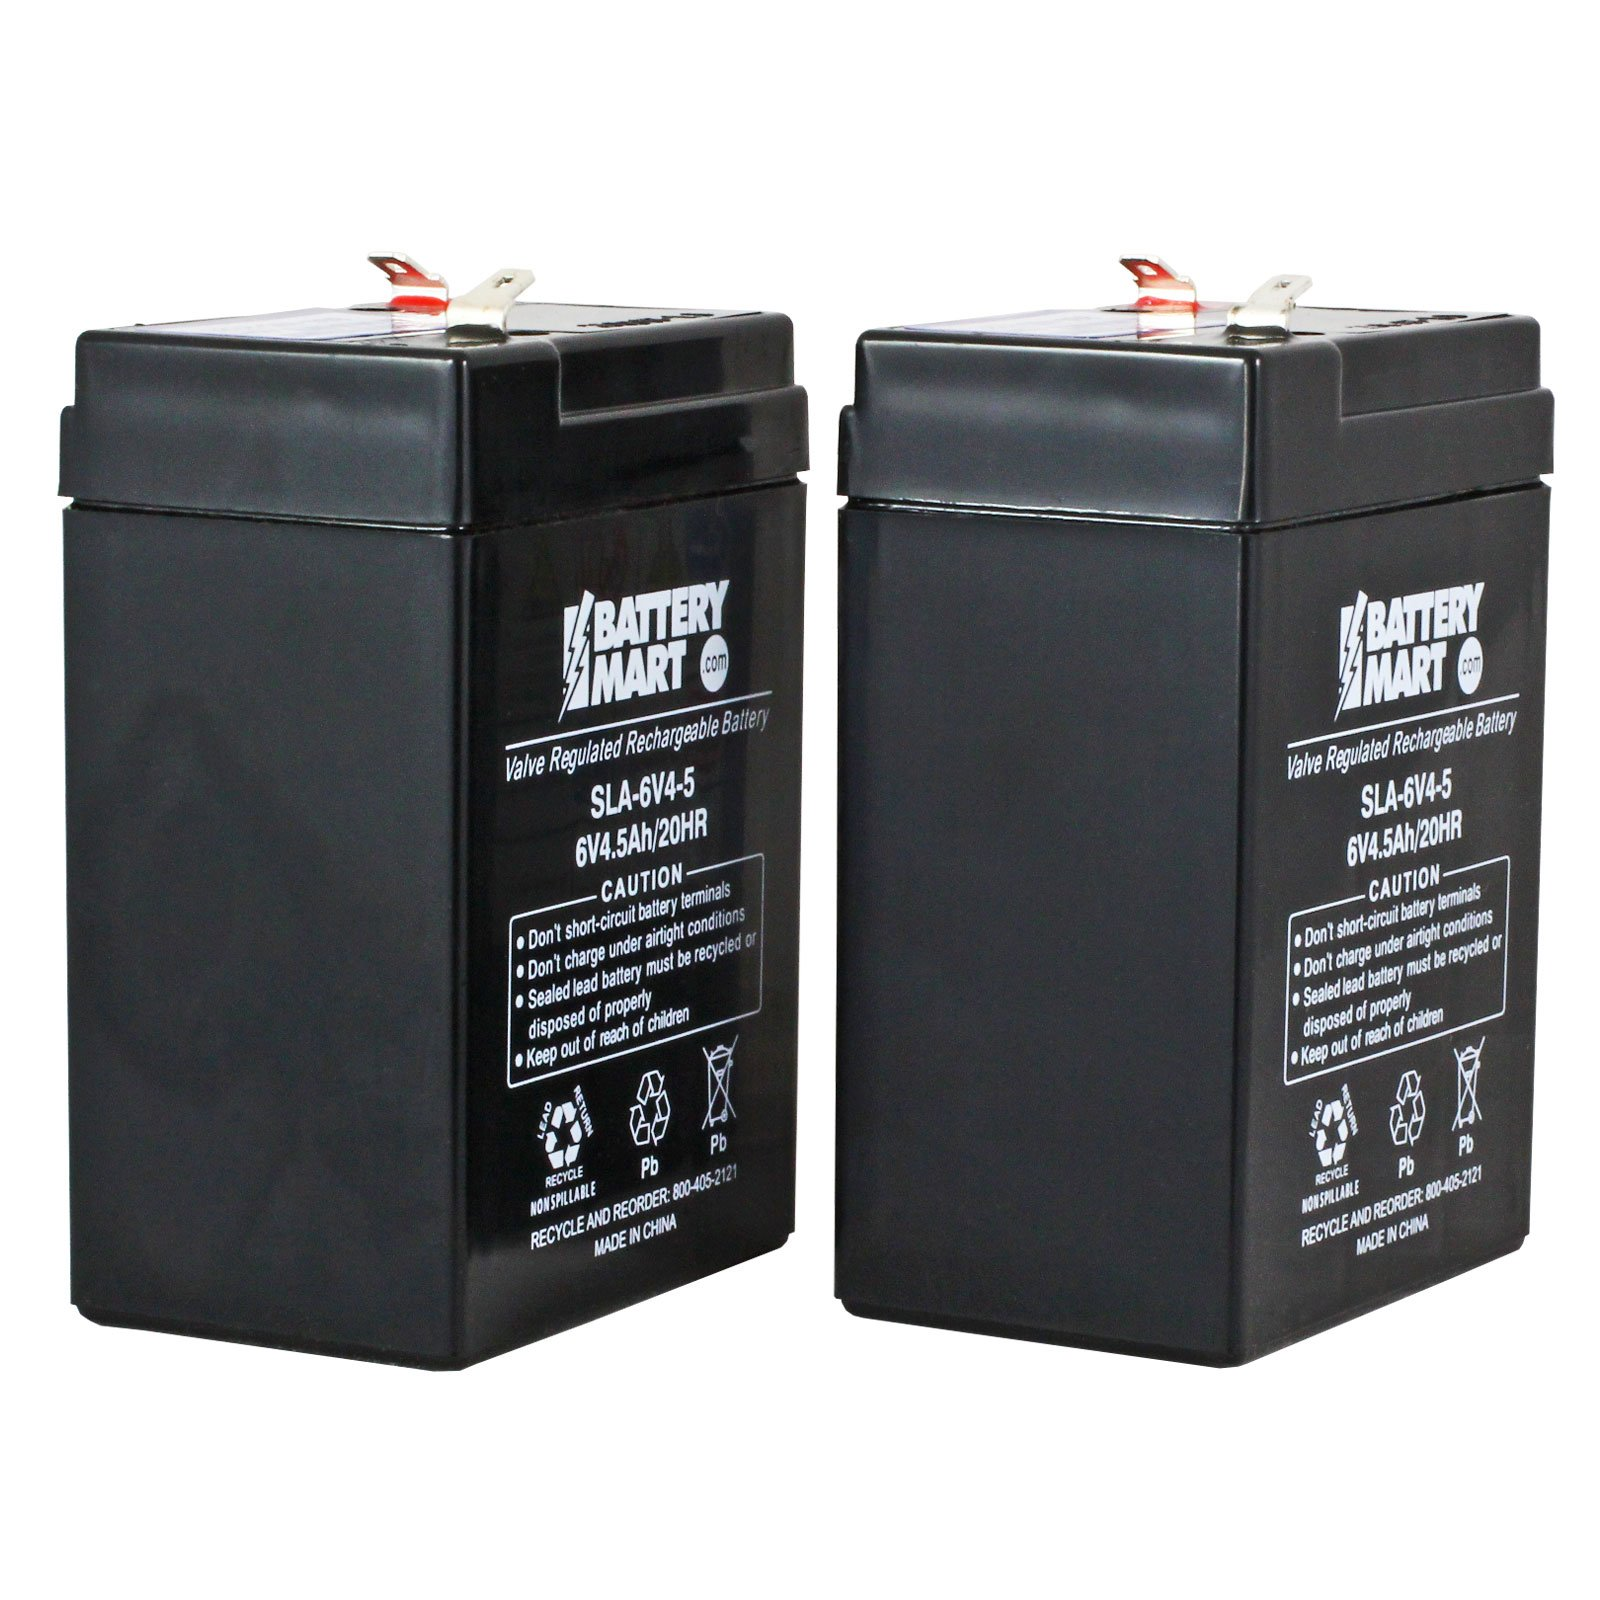 6 volt 4 5 ah sealed lead acid rechargeable battery 2 pack. Black Bedroom Furniture Sets. Home Design Ideas